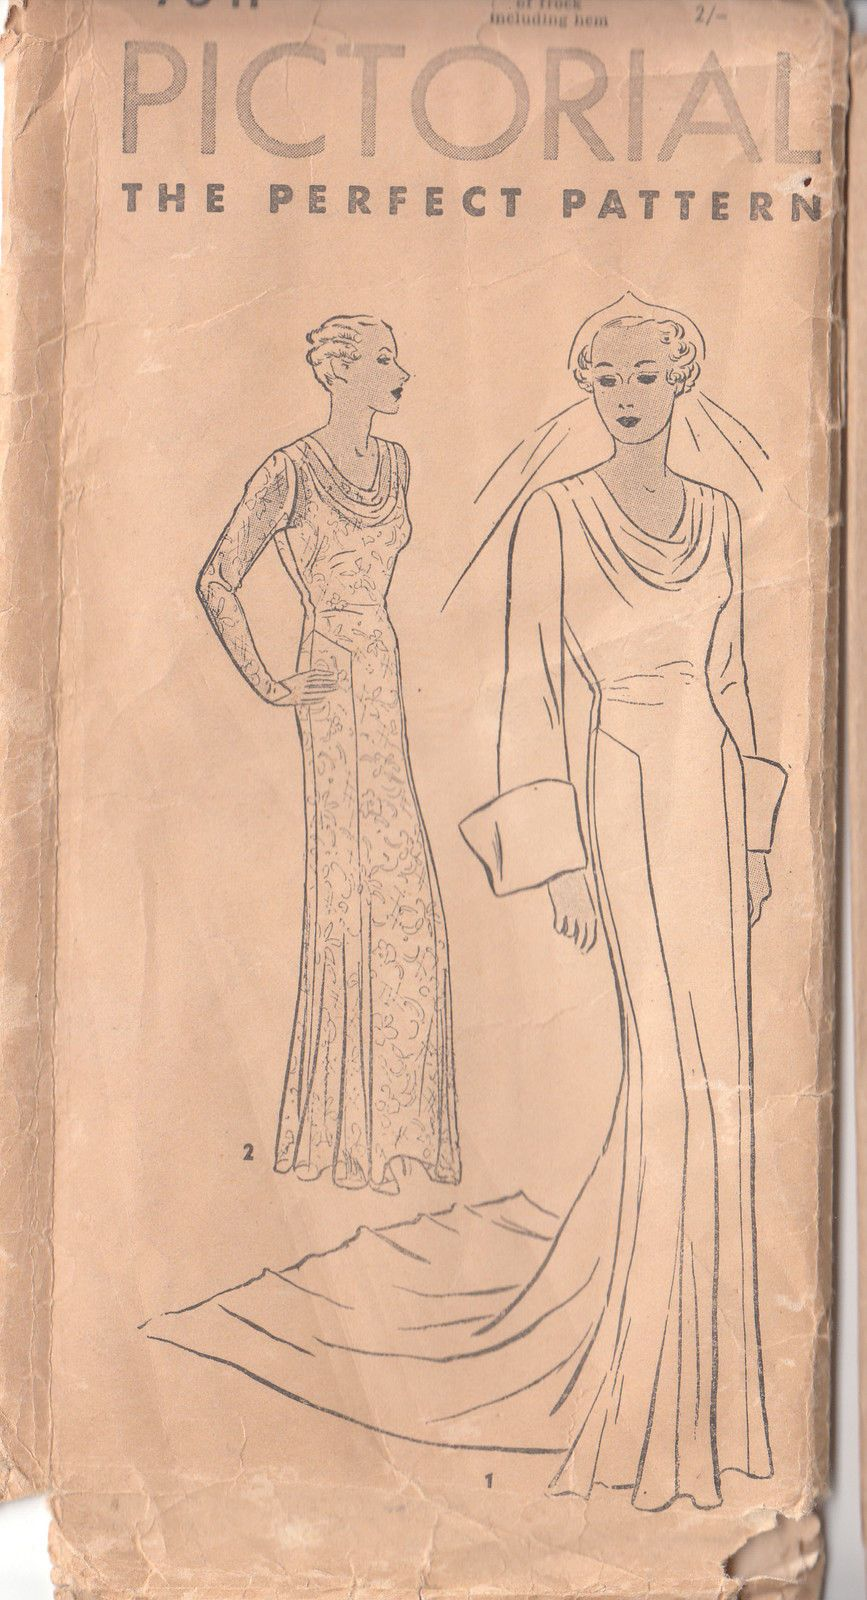 1930s Pictorial The Perfect Pattern 7641 Cowl Neck Wedding Bridal